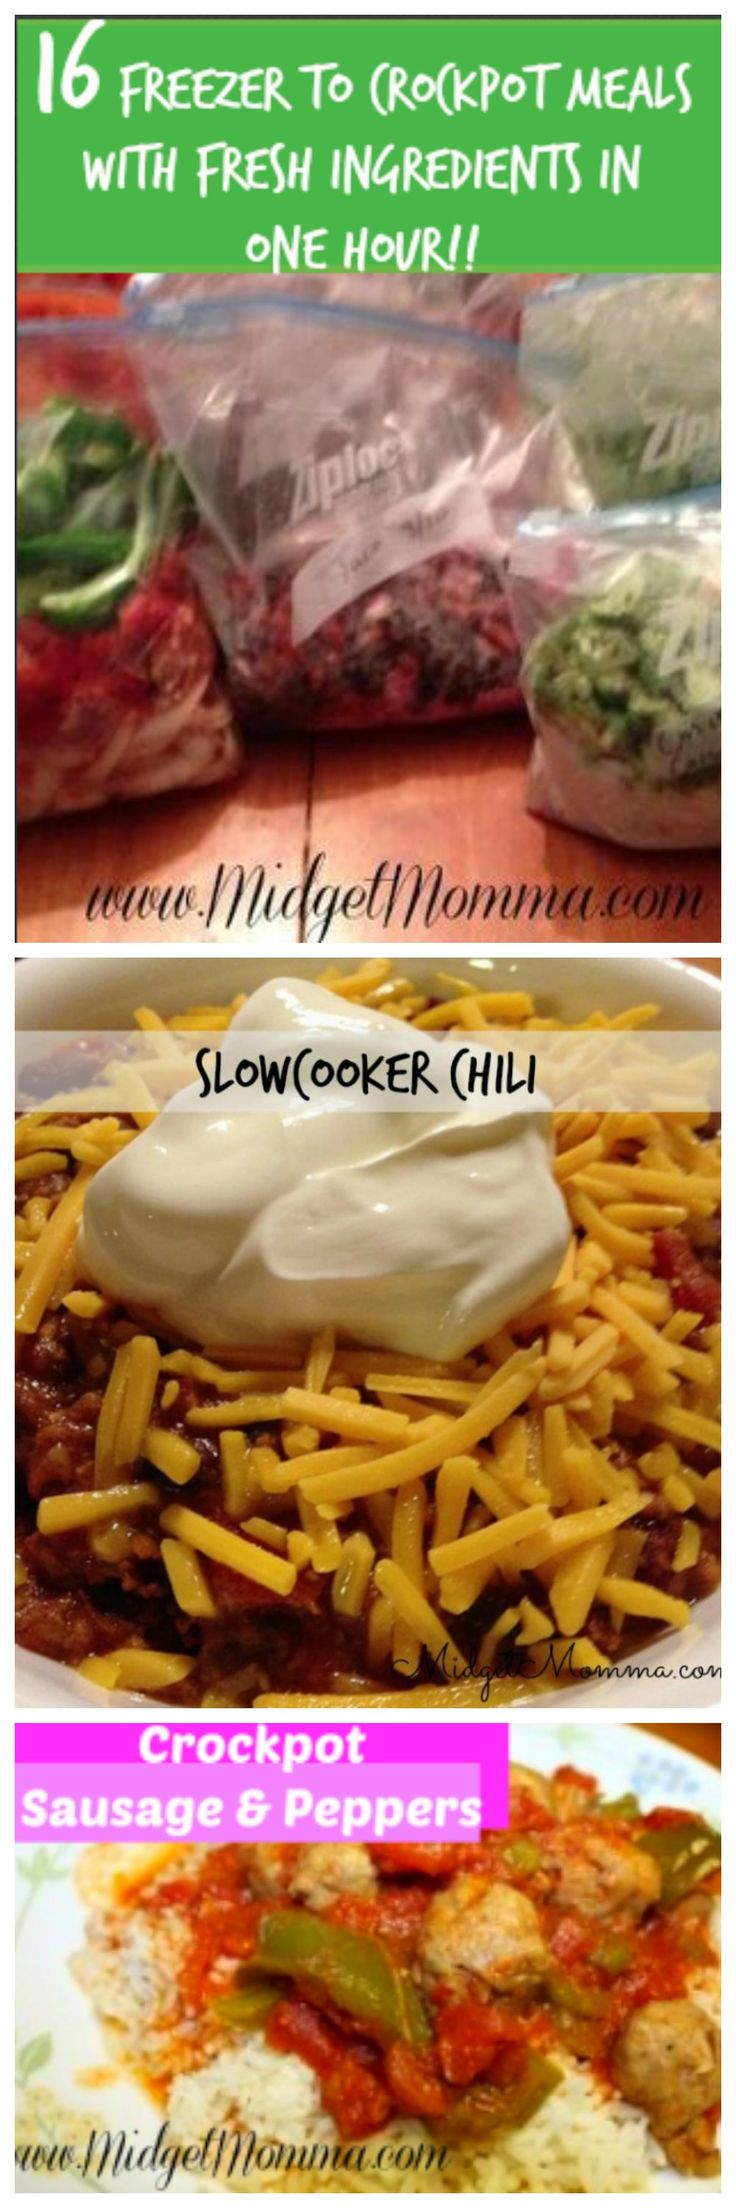 Freezer to Crockpot meals: Prep 16 meals with fresh ingredients in about an hour! Easy to prep meals to put in your freezer and then cook in your crockpot